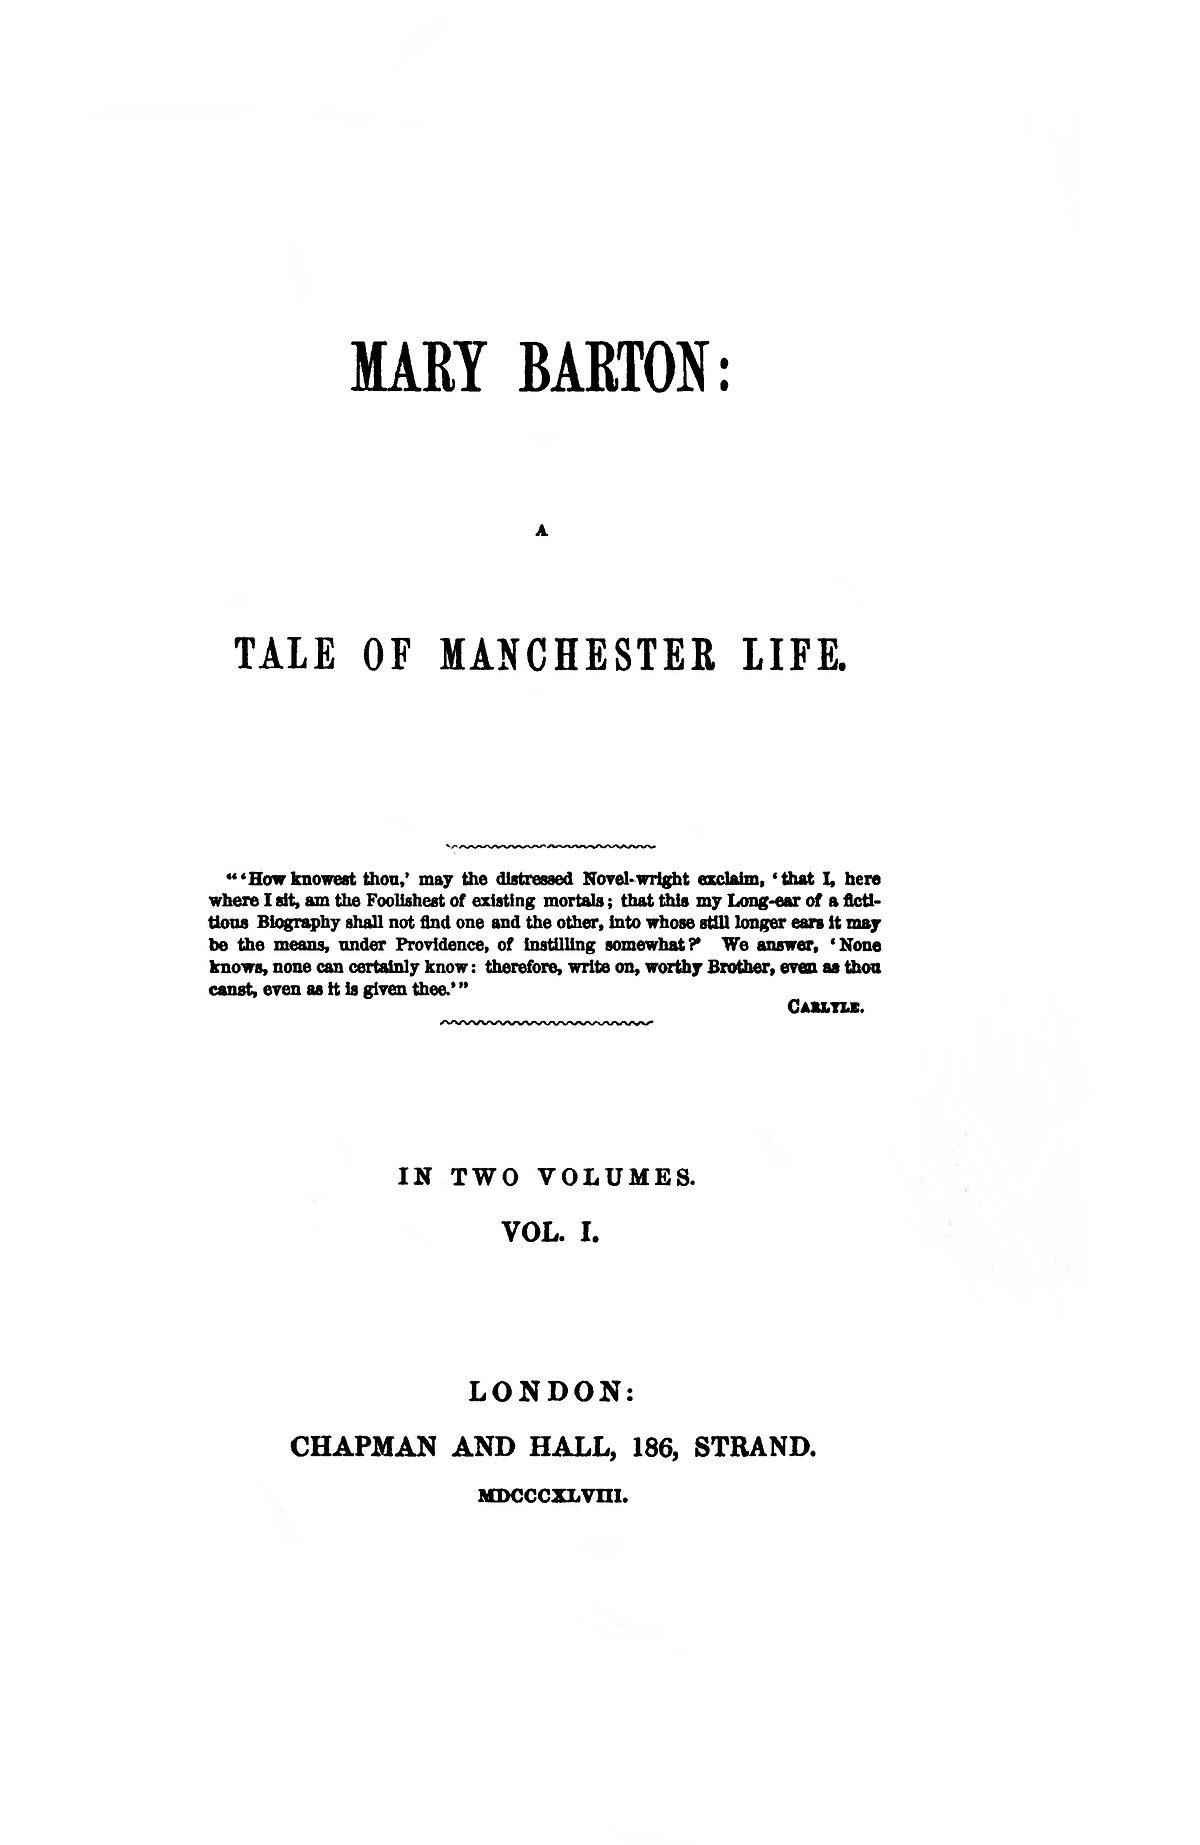 mary barton Supersummary, a modern alternative to sparknotes and cliffsnotes, offers high-quality study guides that feature detailed chapter summaries and analysis of major themes, characters, quotes.